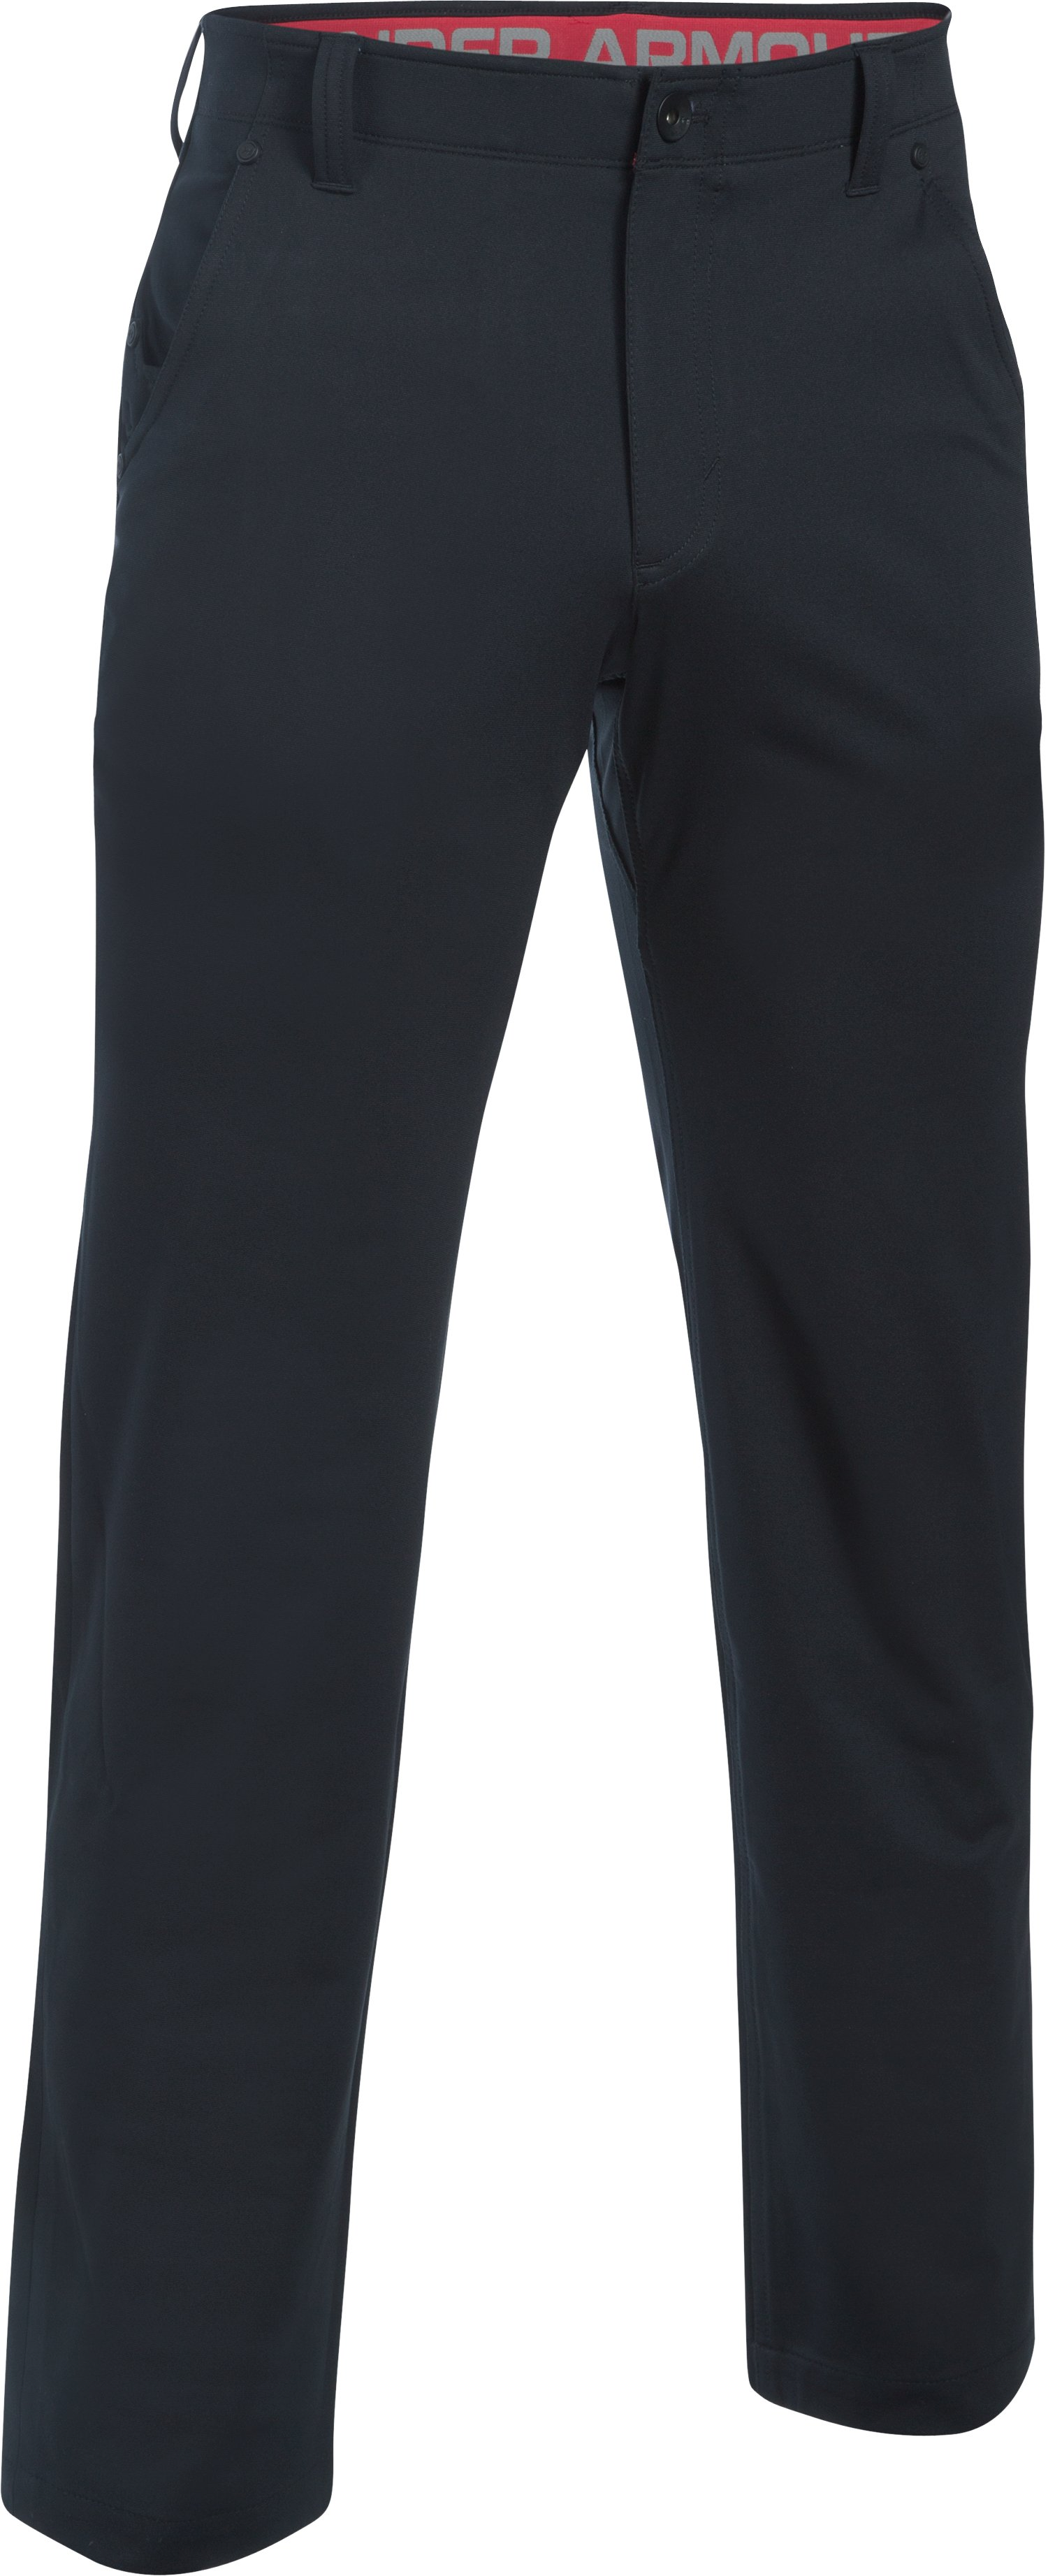 Men's UA Ultimate Pants, Black